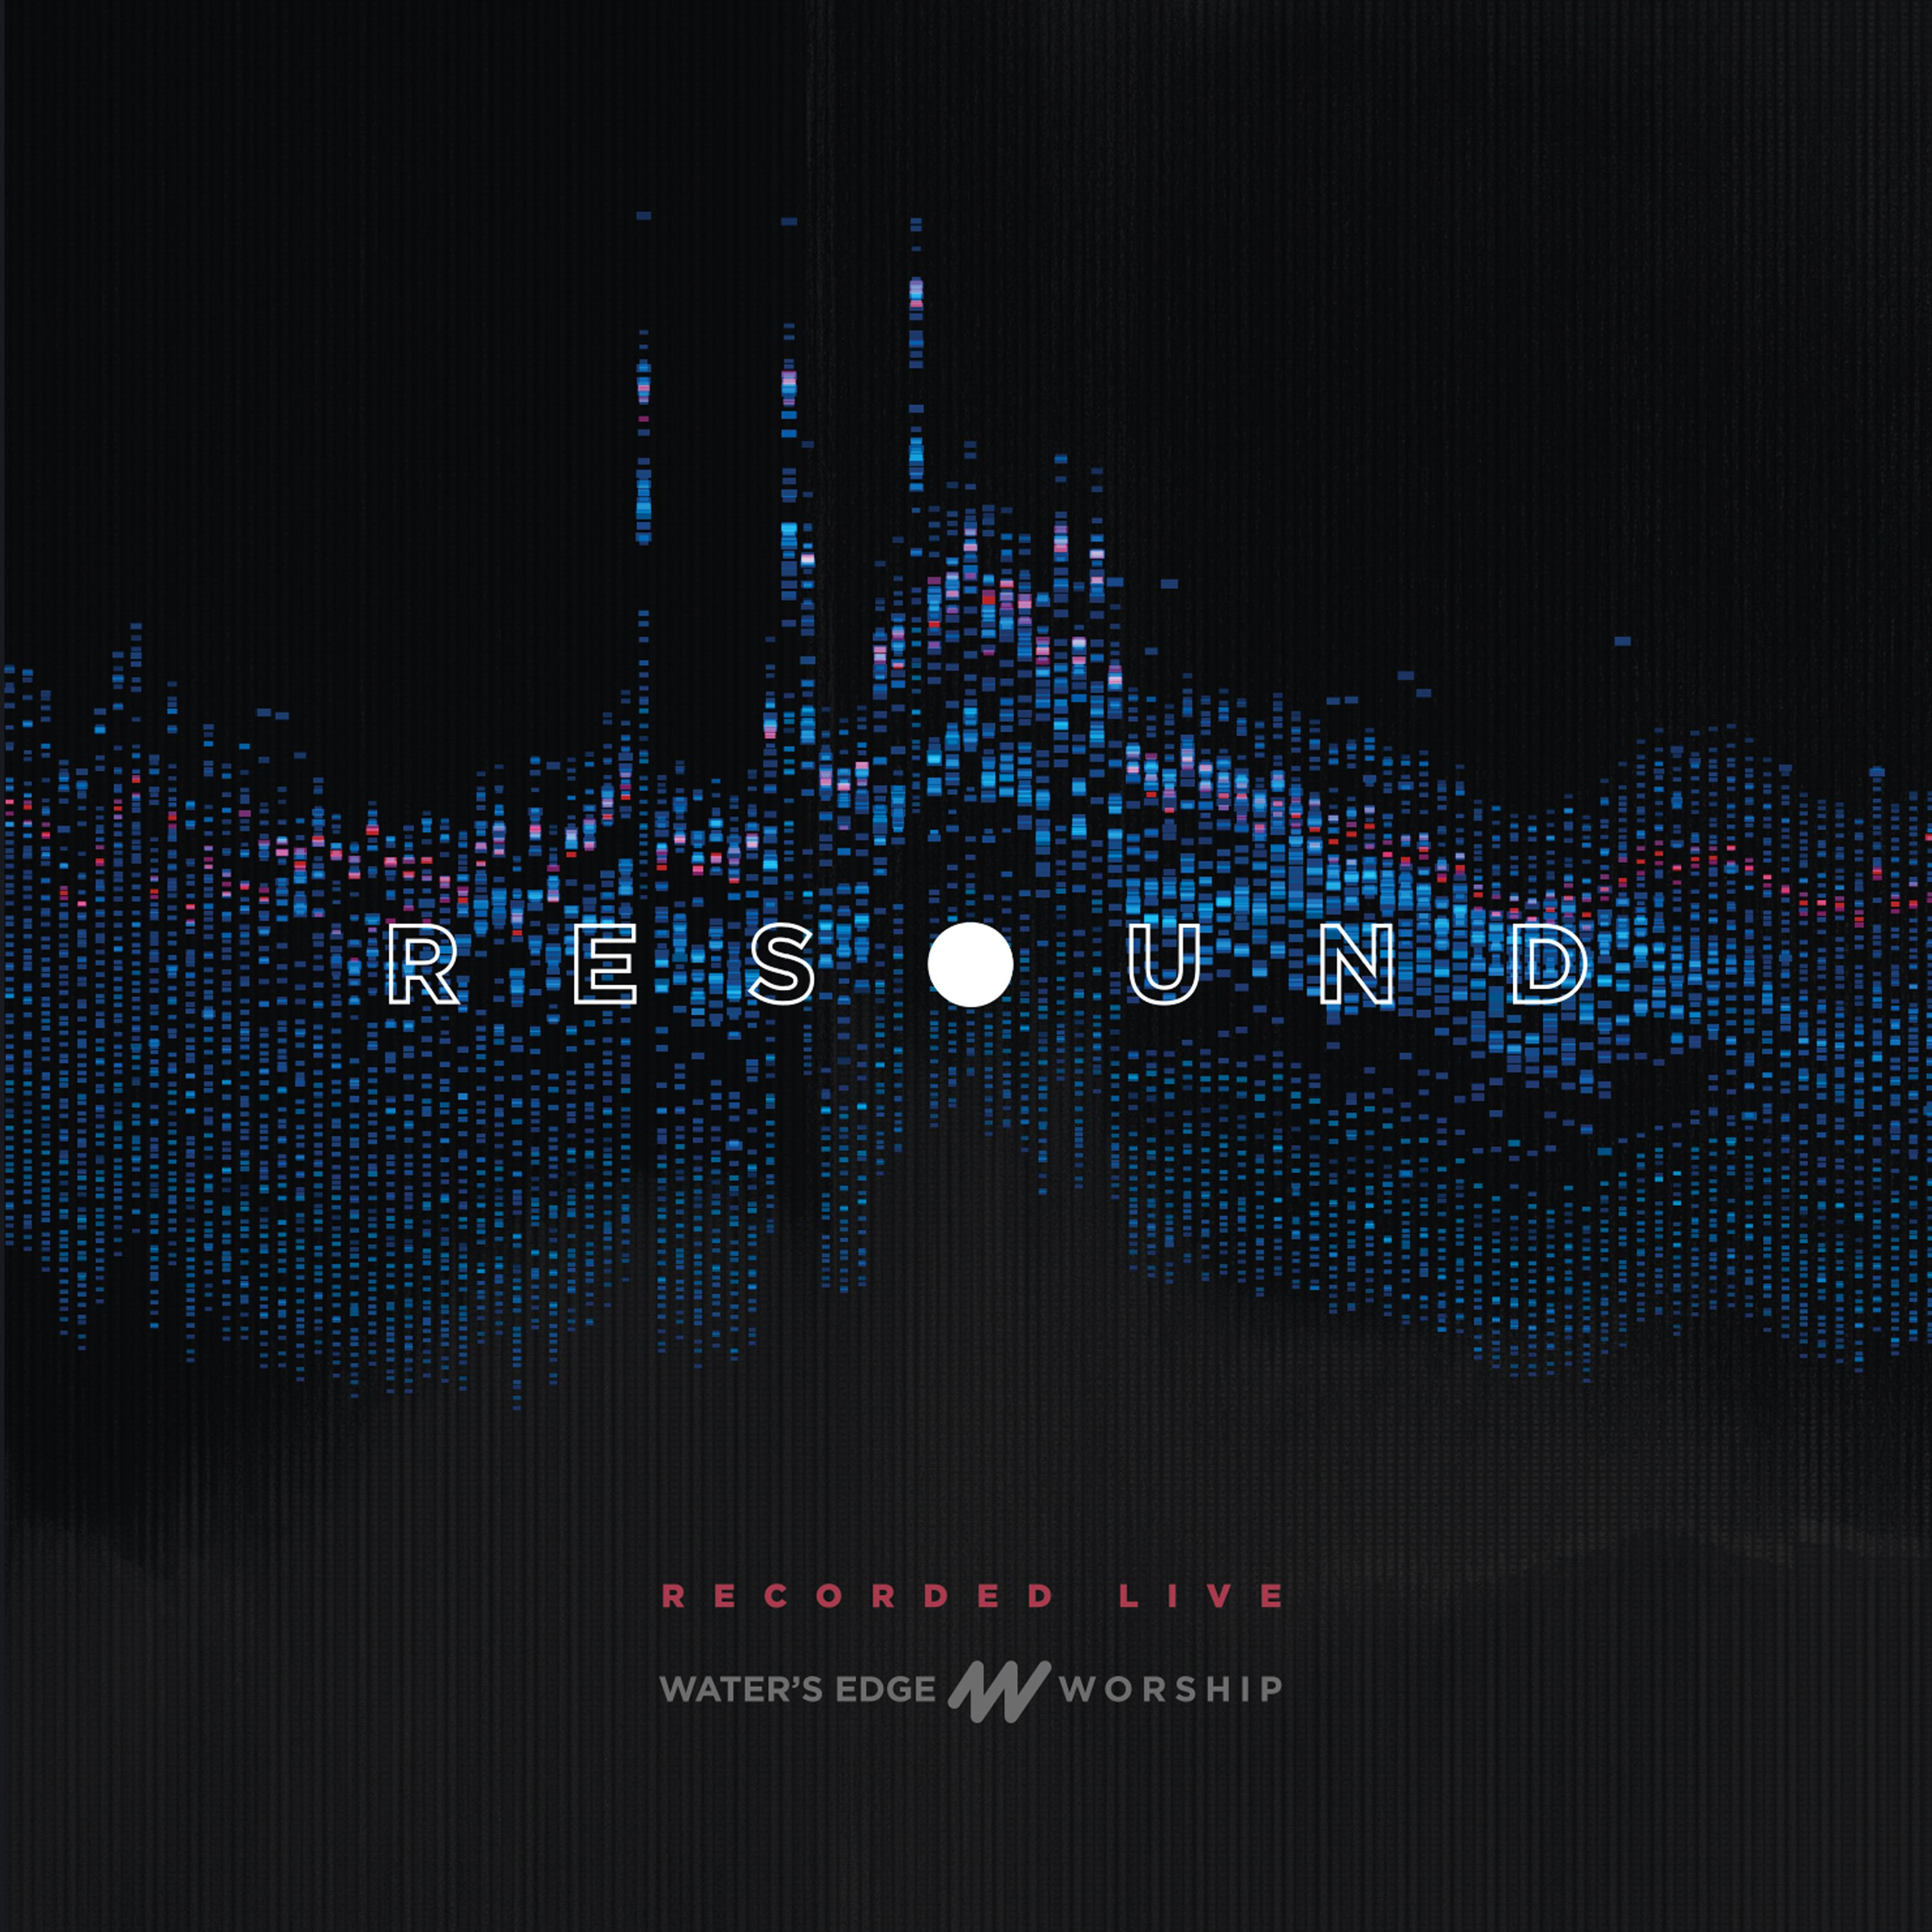 Resound CD cover 3-2020